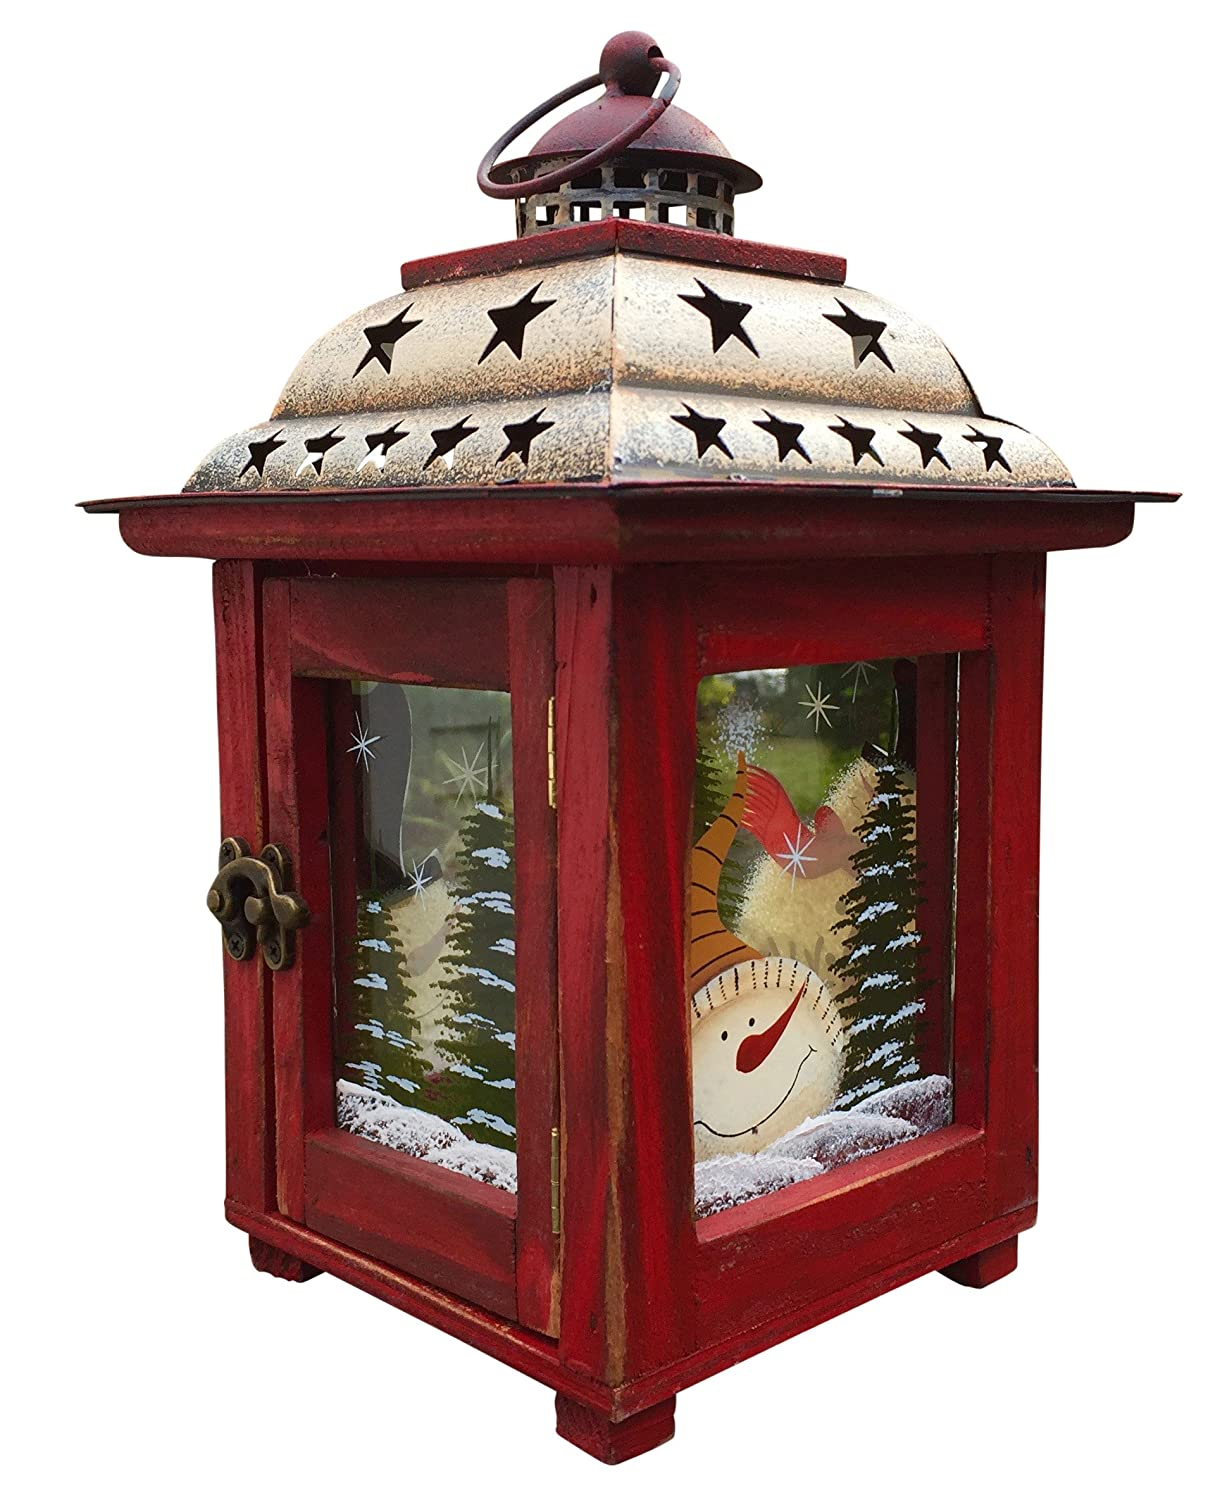 christmas snowman lantern decoration decorative holiday table centerpiece or hanging lantern holder for pillar candle